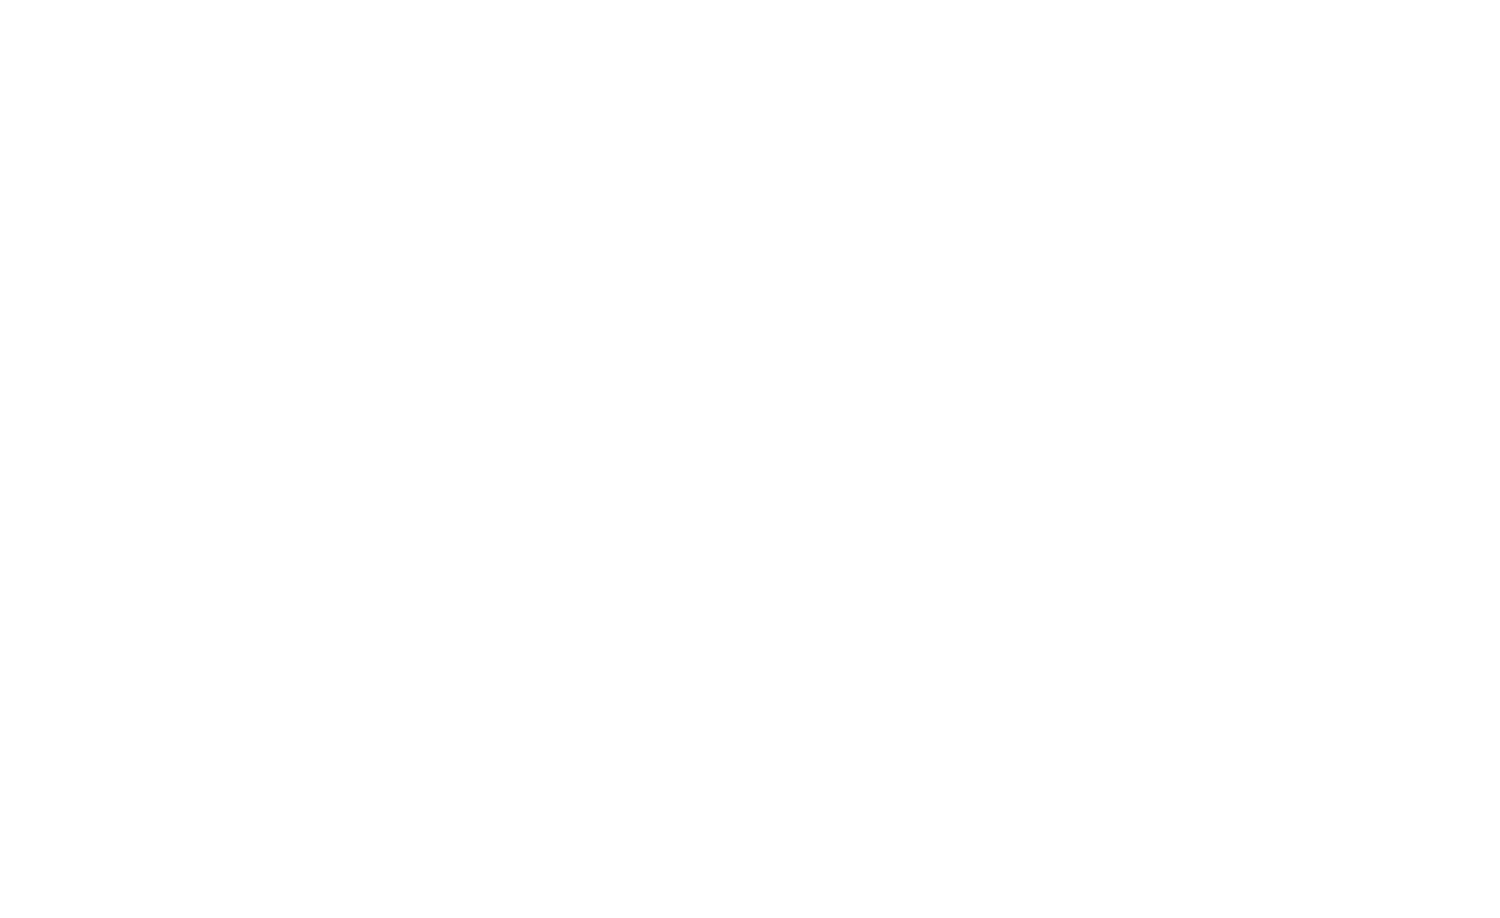 Ryan Films San Diego